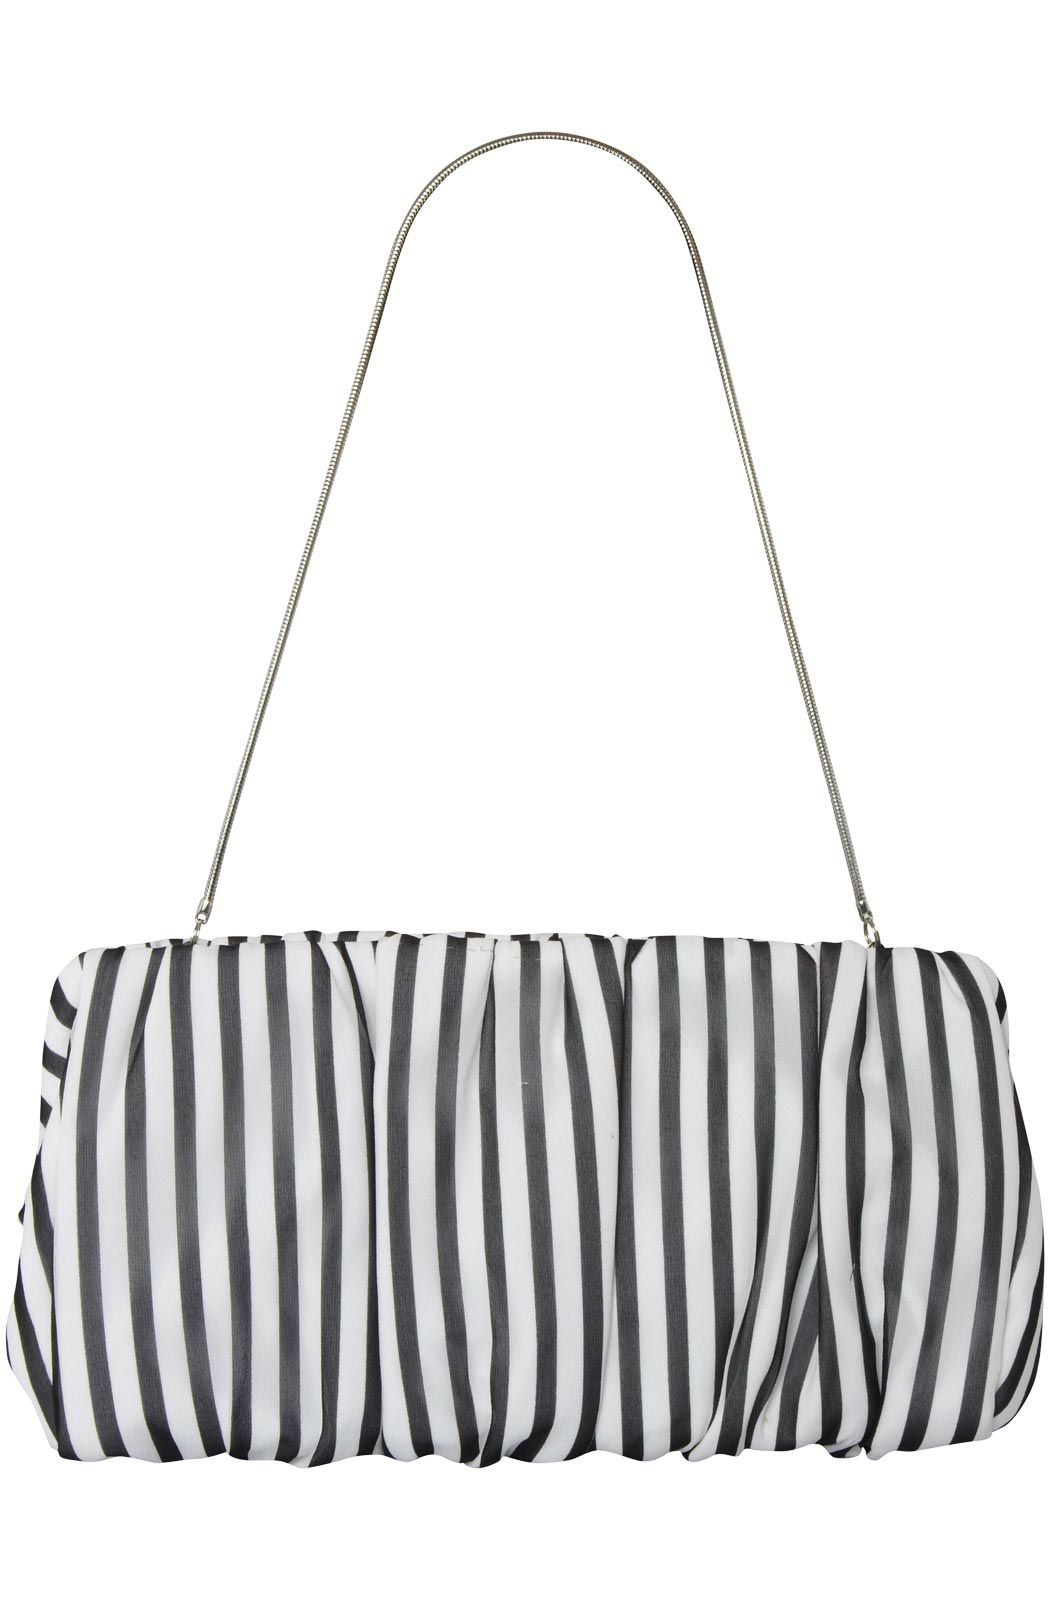 Coast Jinny stripe clutch product image